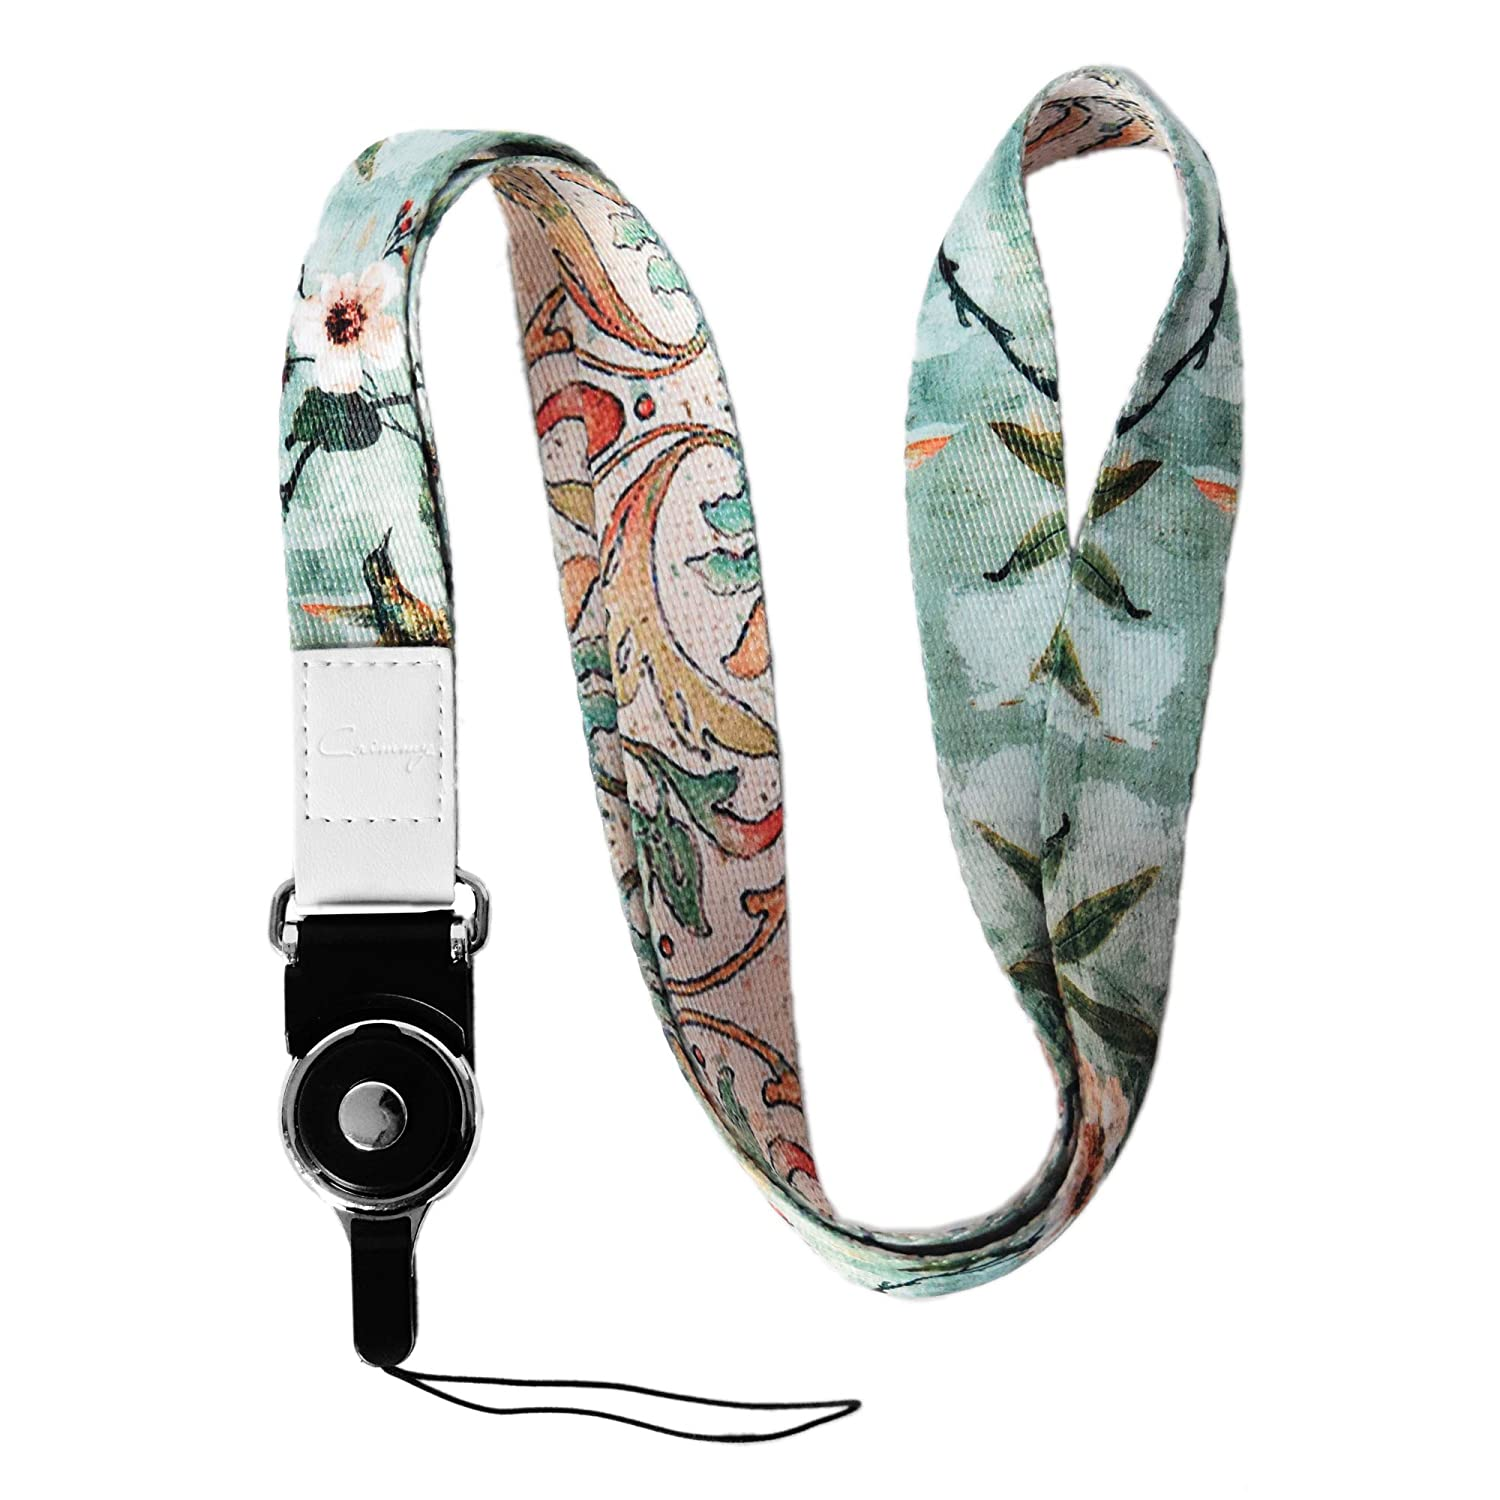 Cell Phone Universal Crimmy Detachable Cell Phone Neck Lanyard Double Sided Neck Strap Band Lanyards for Camera Light Flower Flash Drive iPod USB